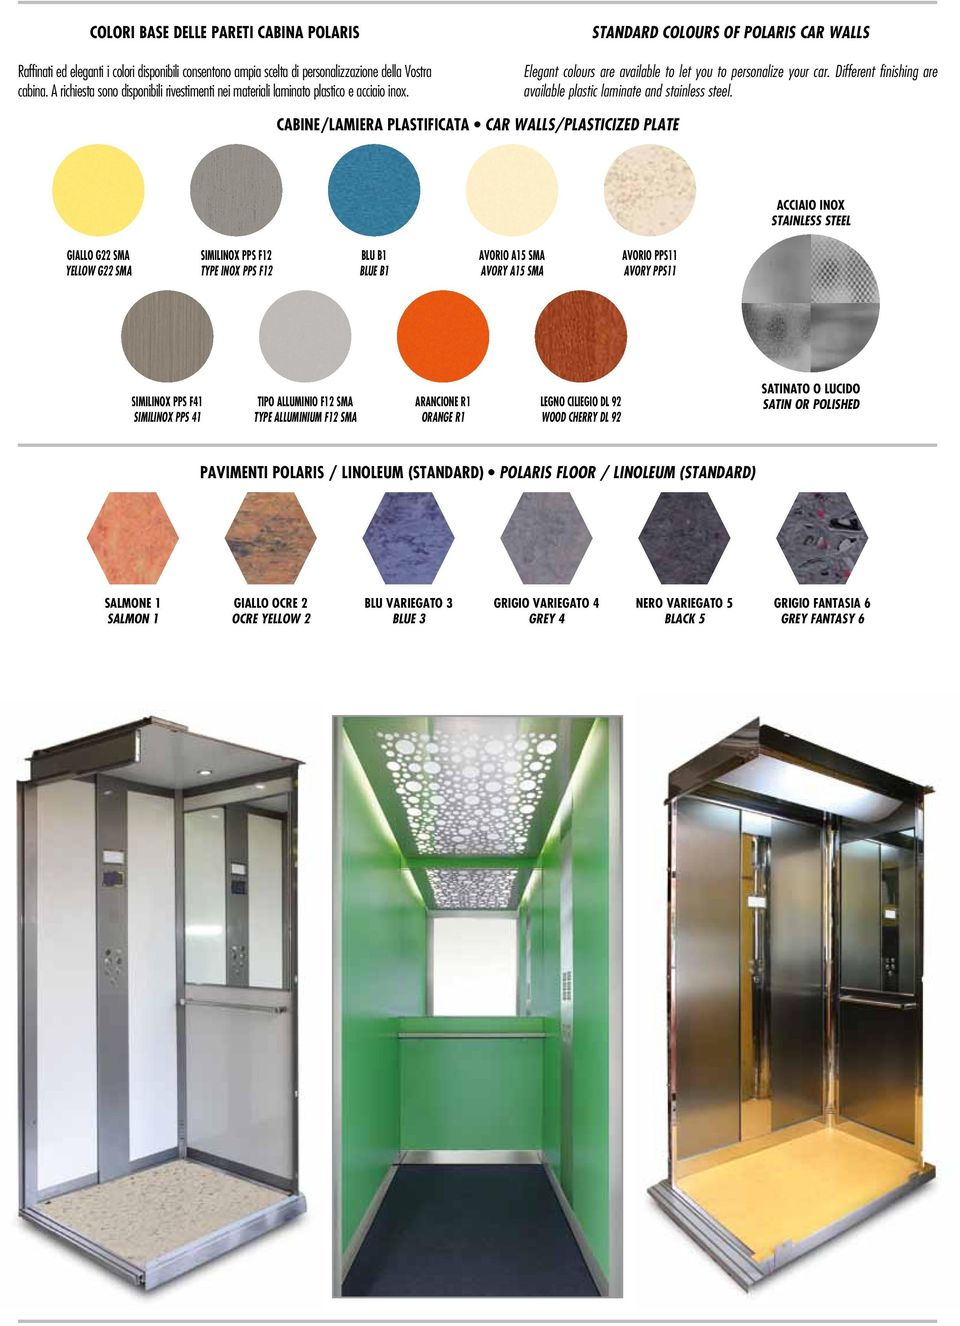 Different finishing are available plastic laminate and stainless steel.